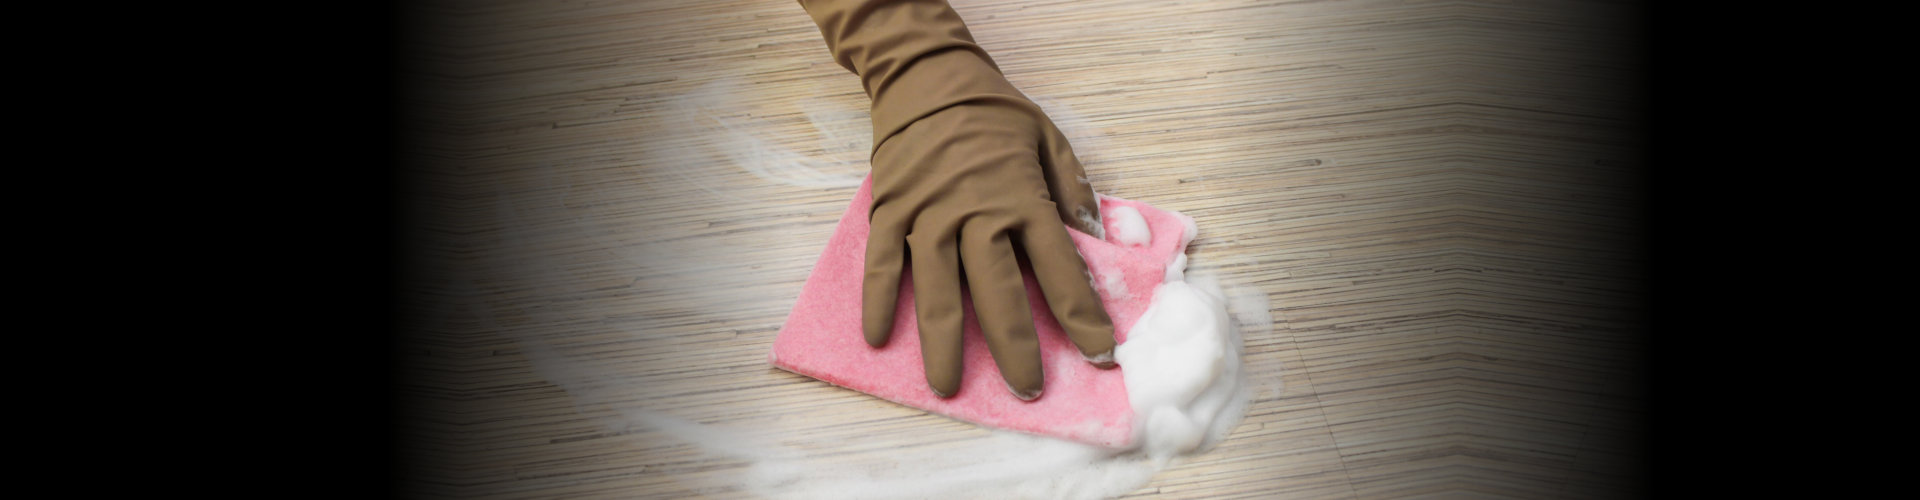 hand with a cleaner